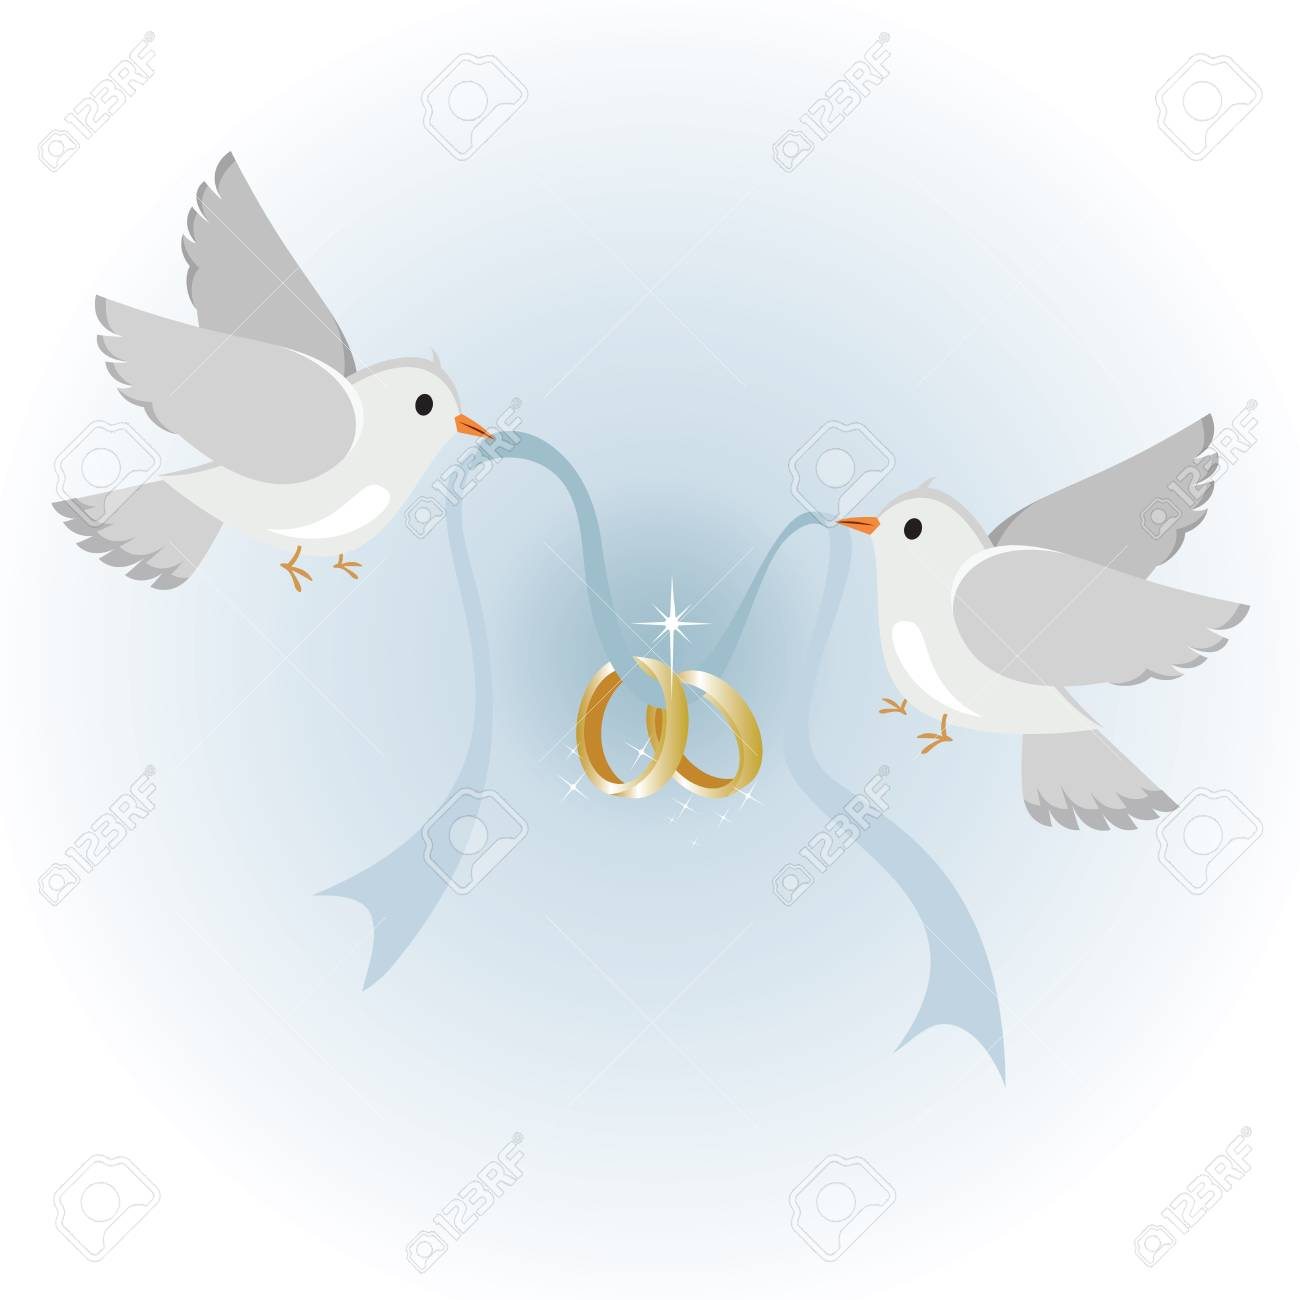 Wedding doves with rings, symbol of love and wedding..